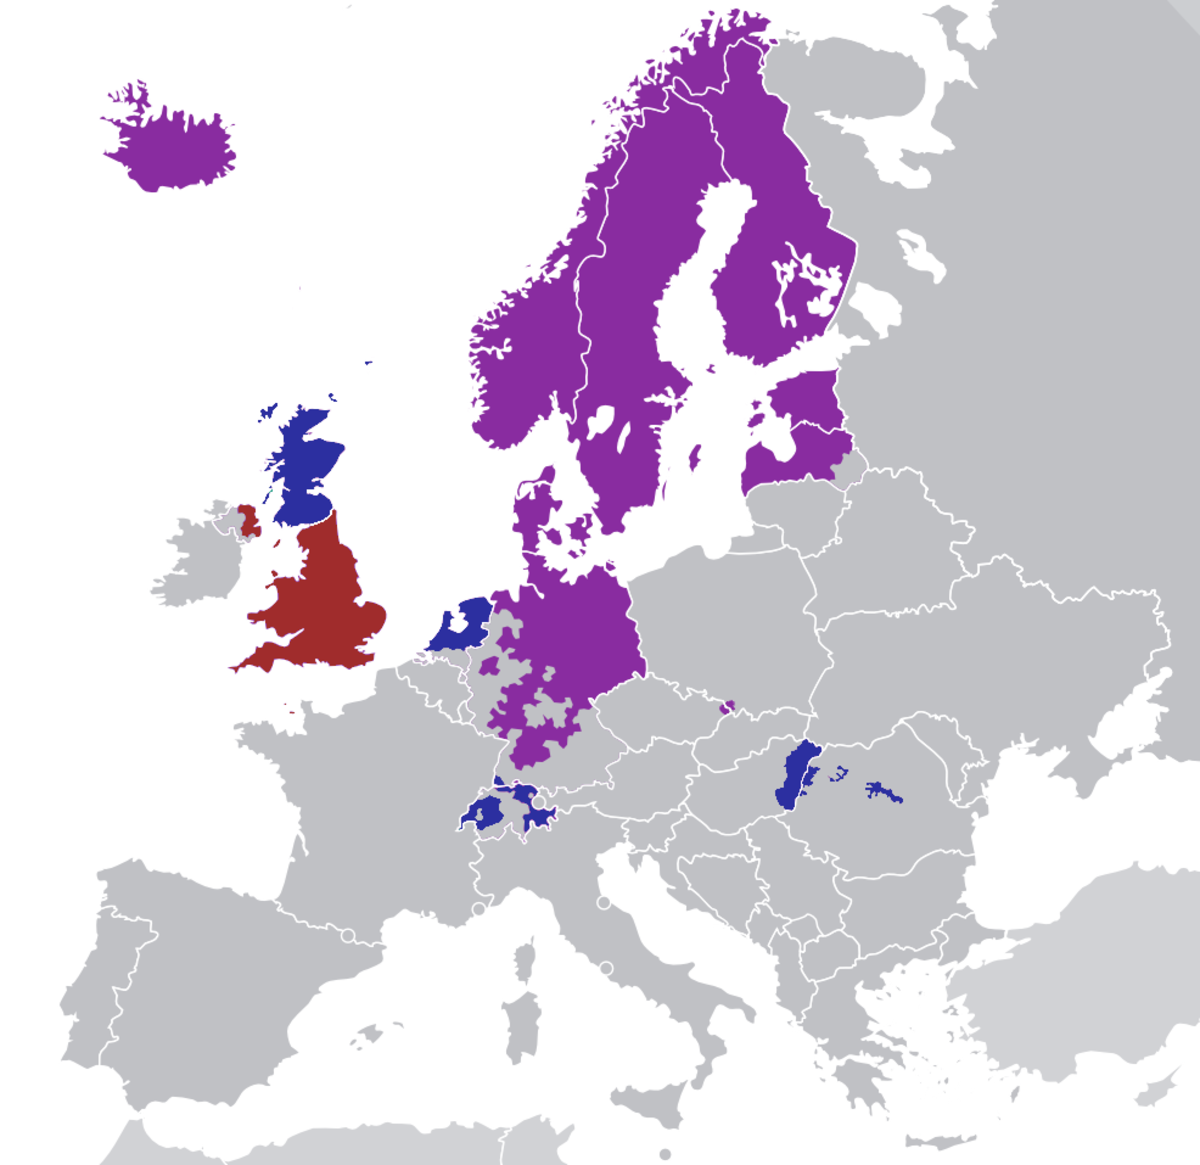 The more individualized Protestantism developed and spread in northern Europe while Catholicism kept a greater foothold in the relatively collectivist southern Europe.